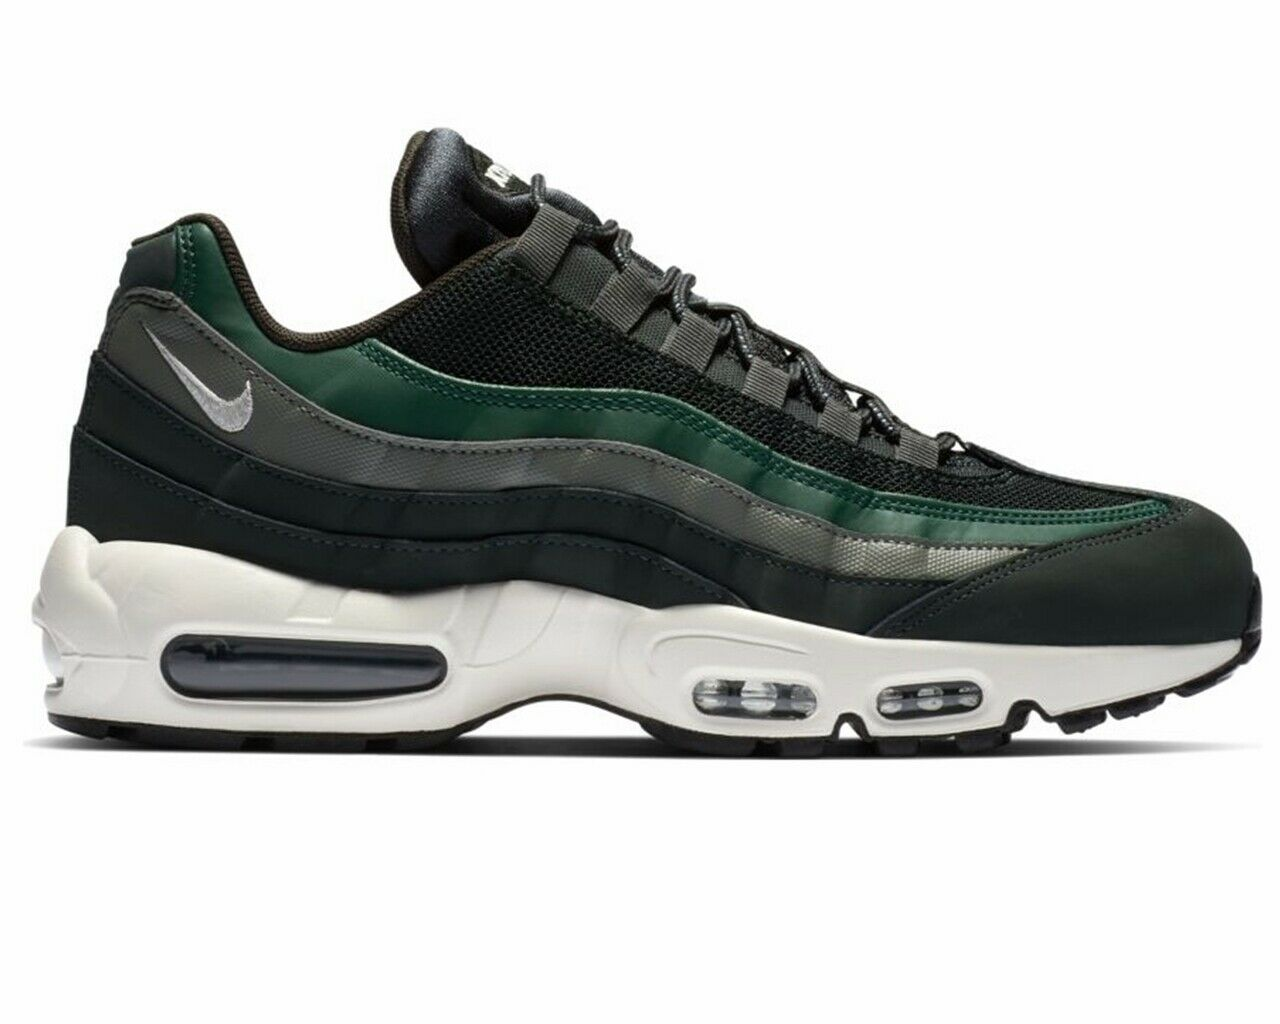 Nike Air Max 95 Essential 749766 304 Mens Trainers Outdoor Green Womens shoes